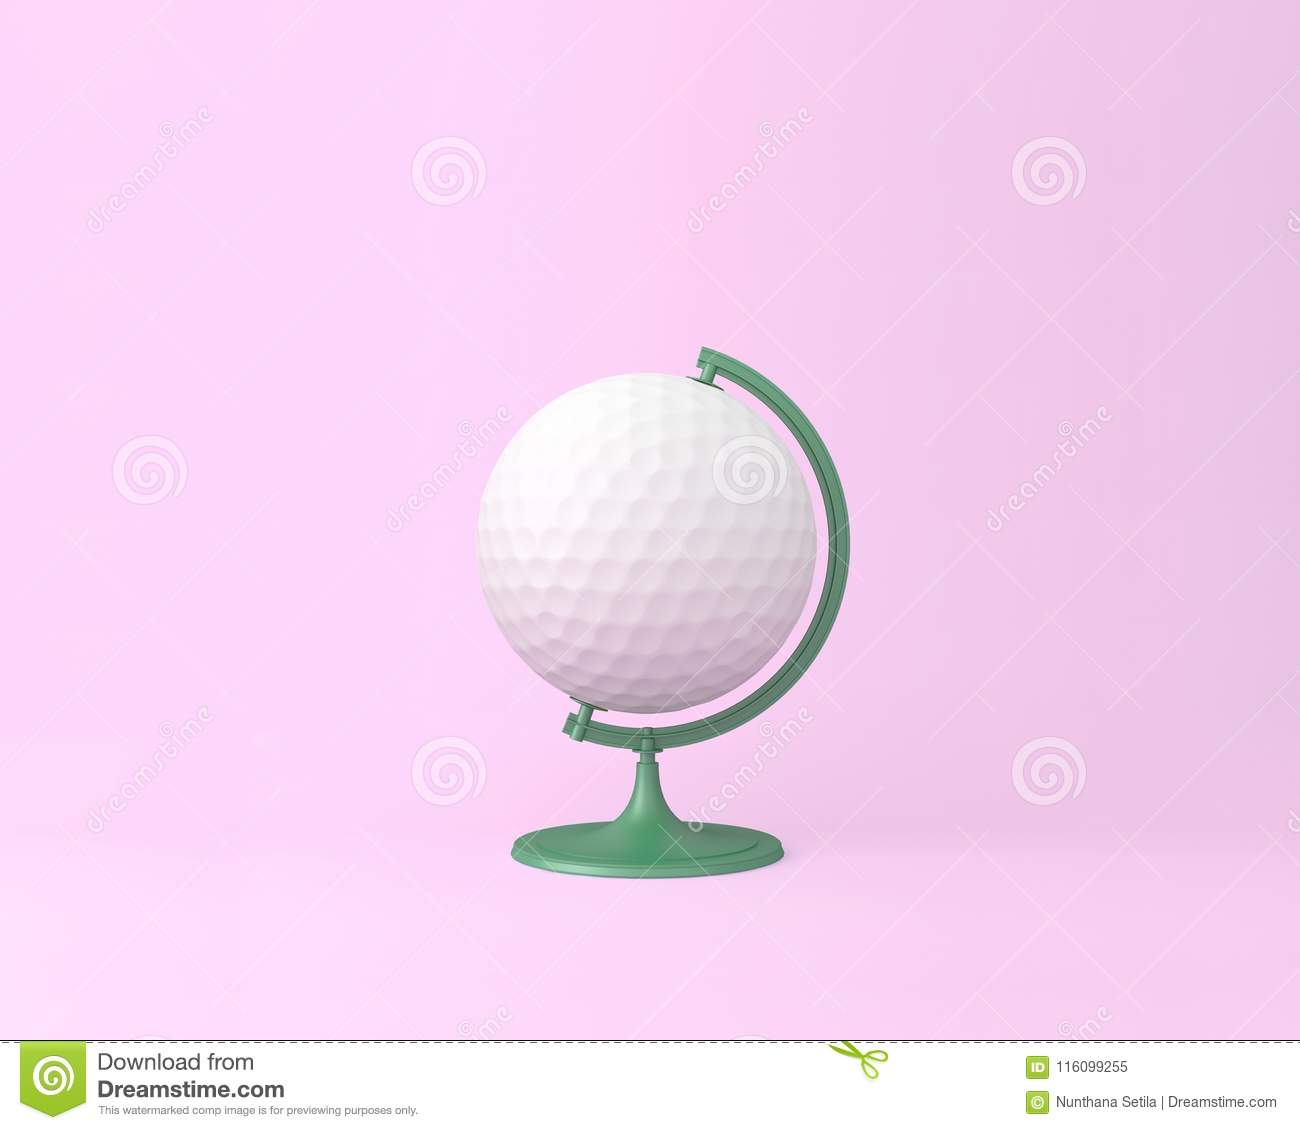 Globe sphere orb golf concept on pastel pink background. minimal